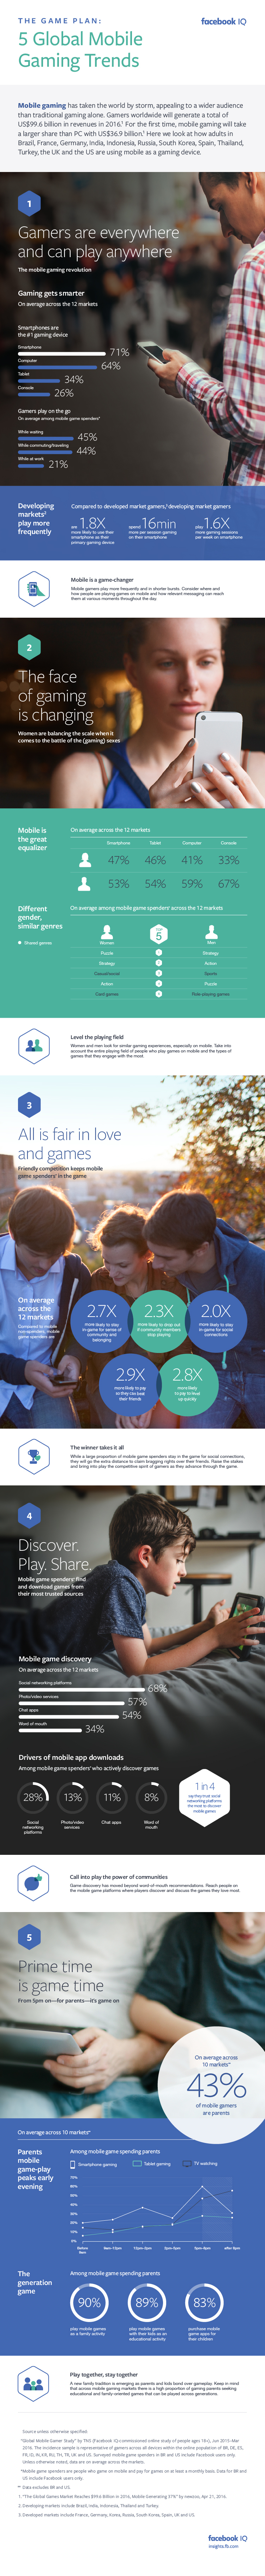 Facebook Conducts Research into the Opportunities of Mobile Gaming [Infographic] | Social Media Today